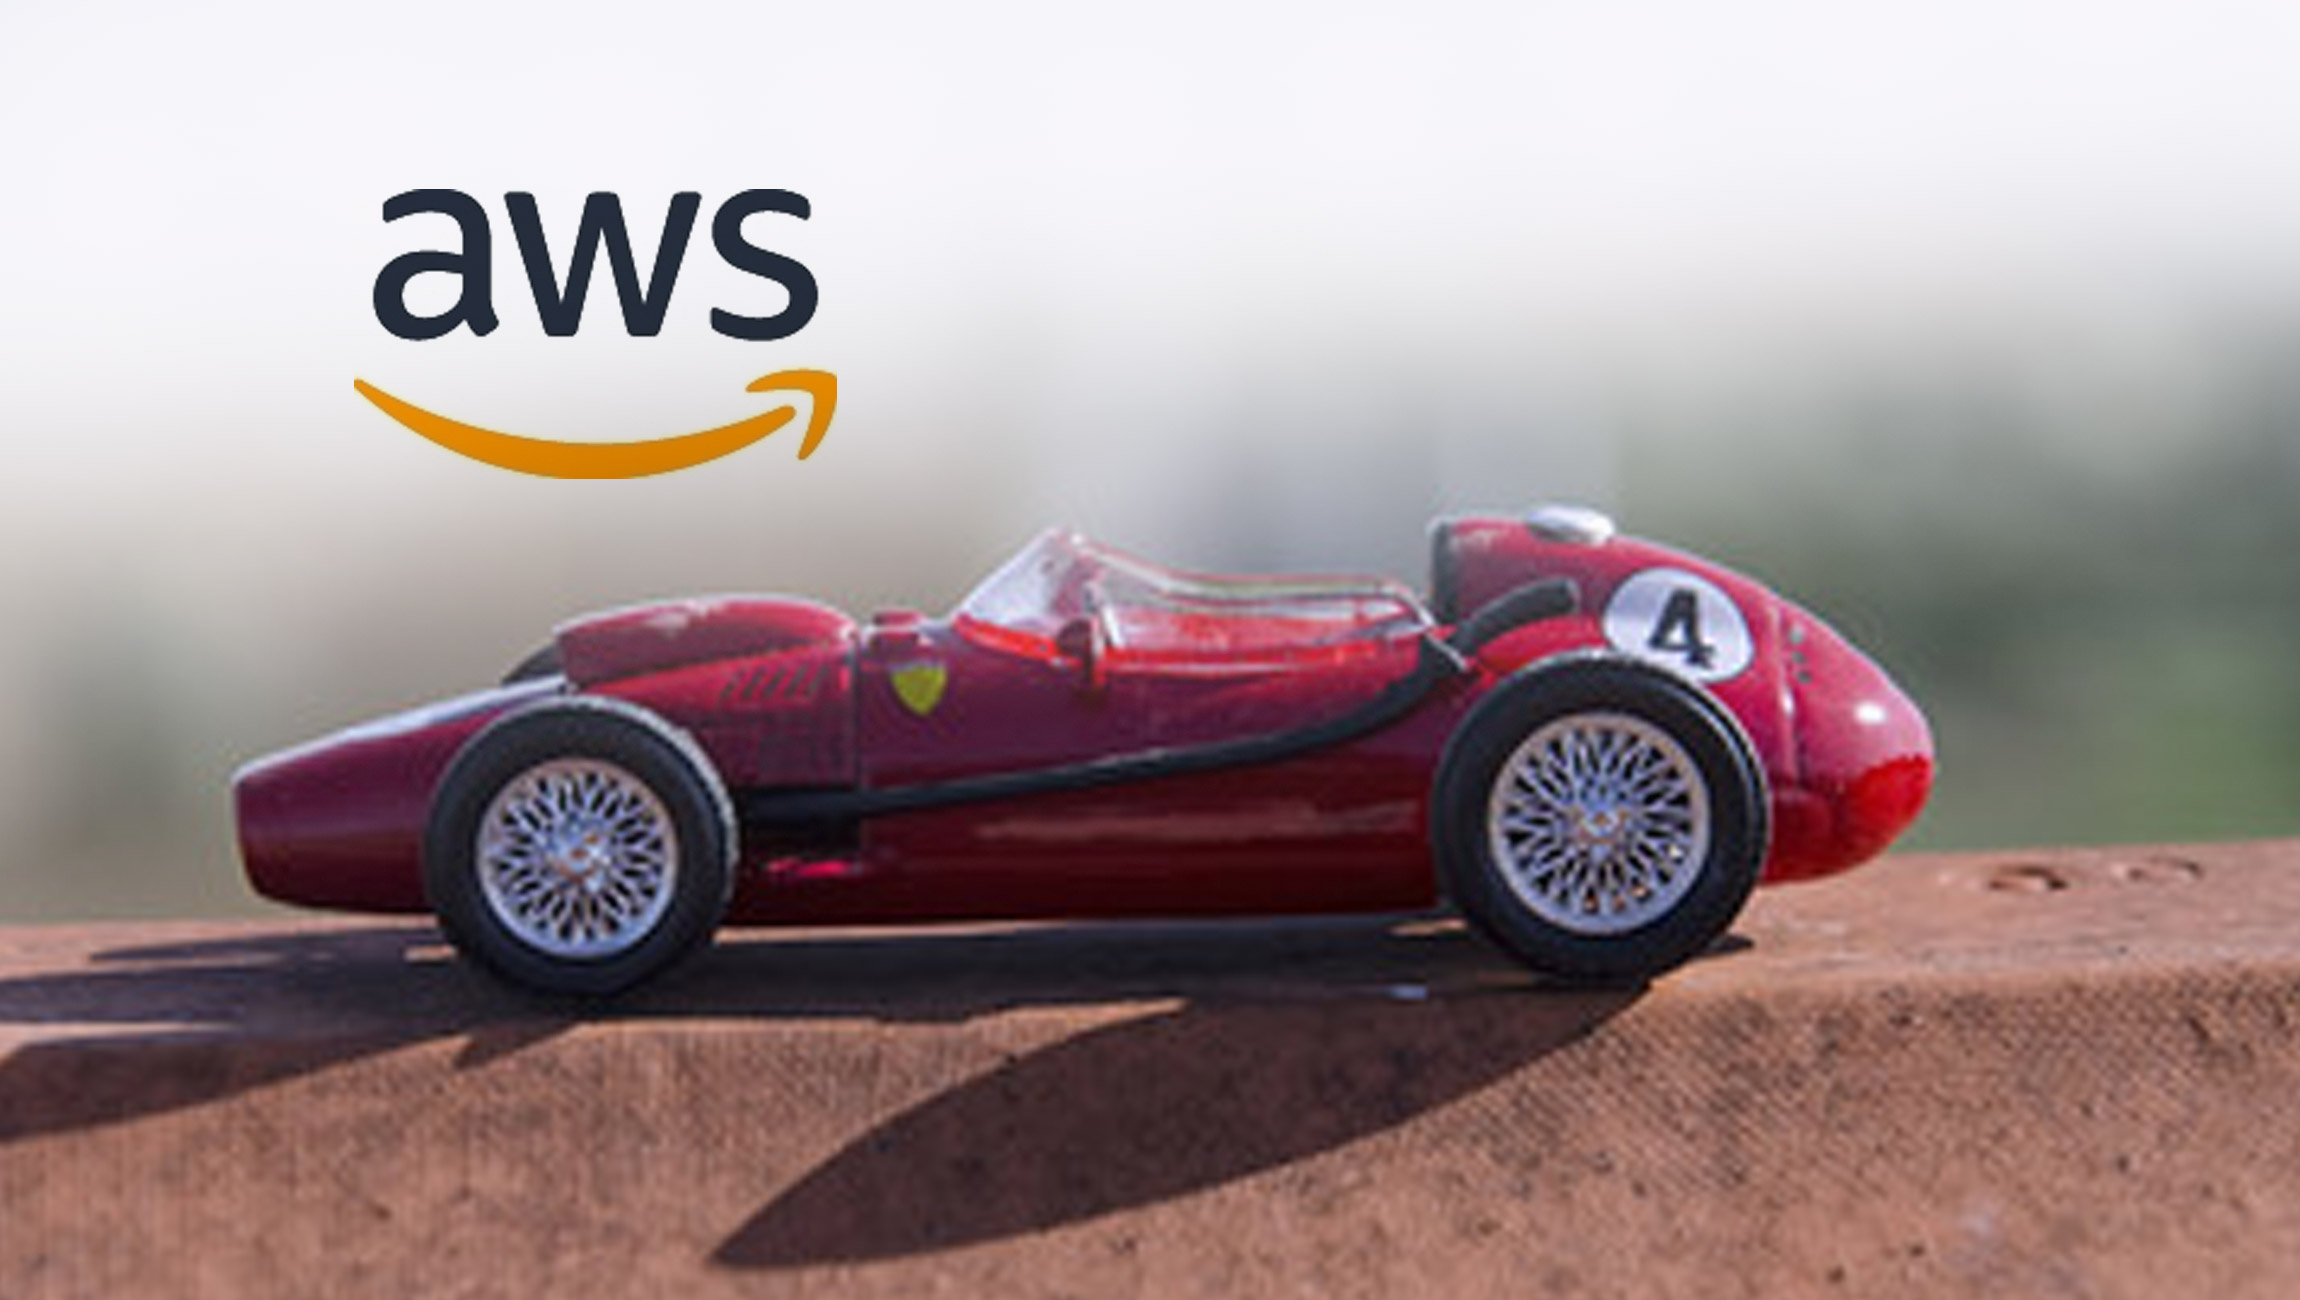 Ferrari Selects AWS As Its Official Cloud Provider To Power Innovation On The Road And Track